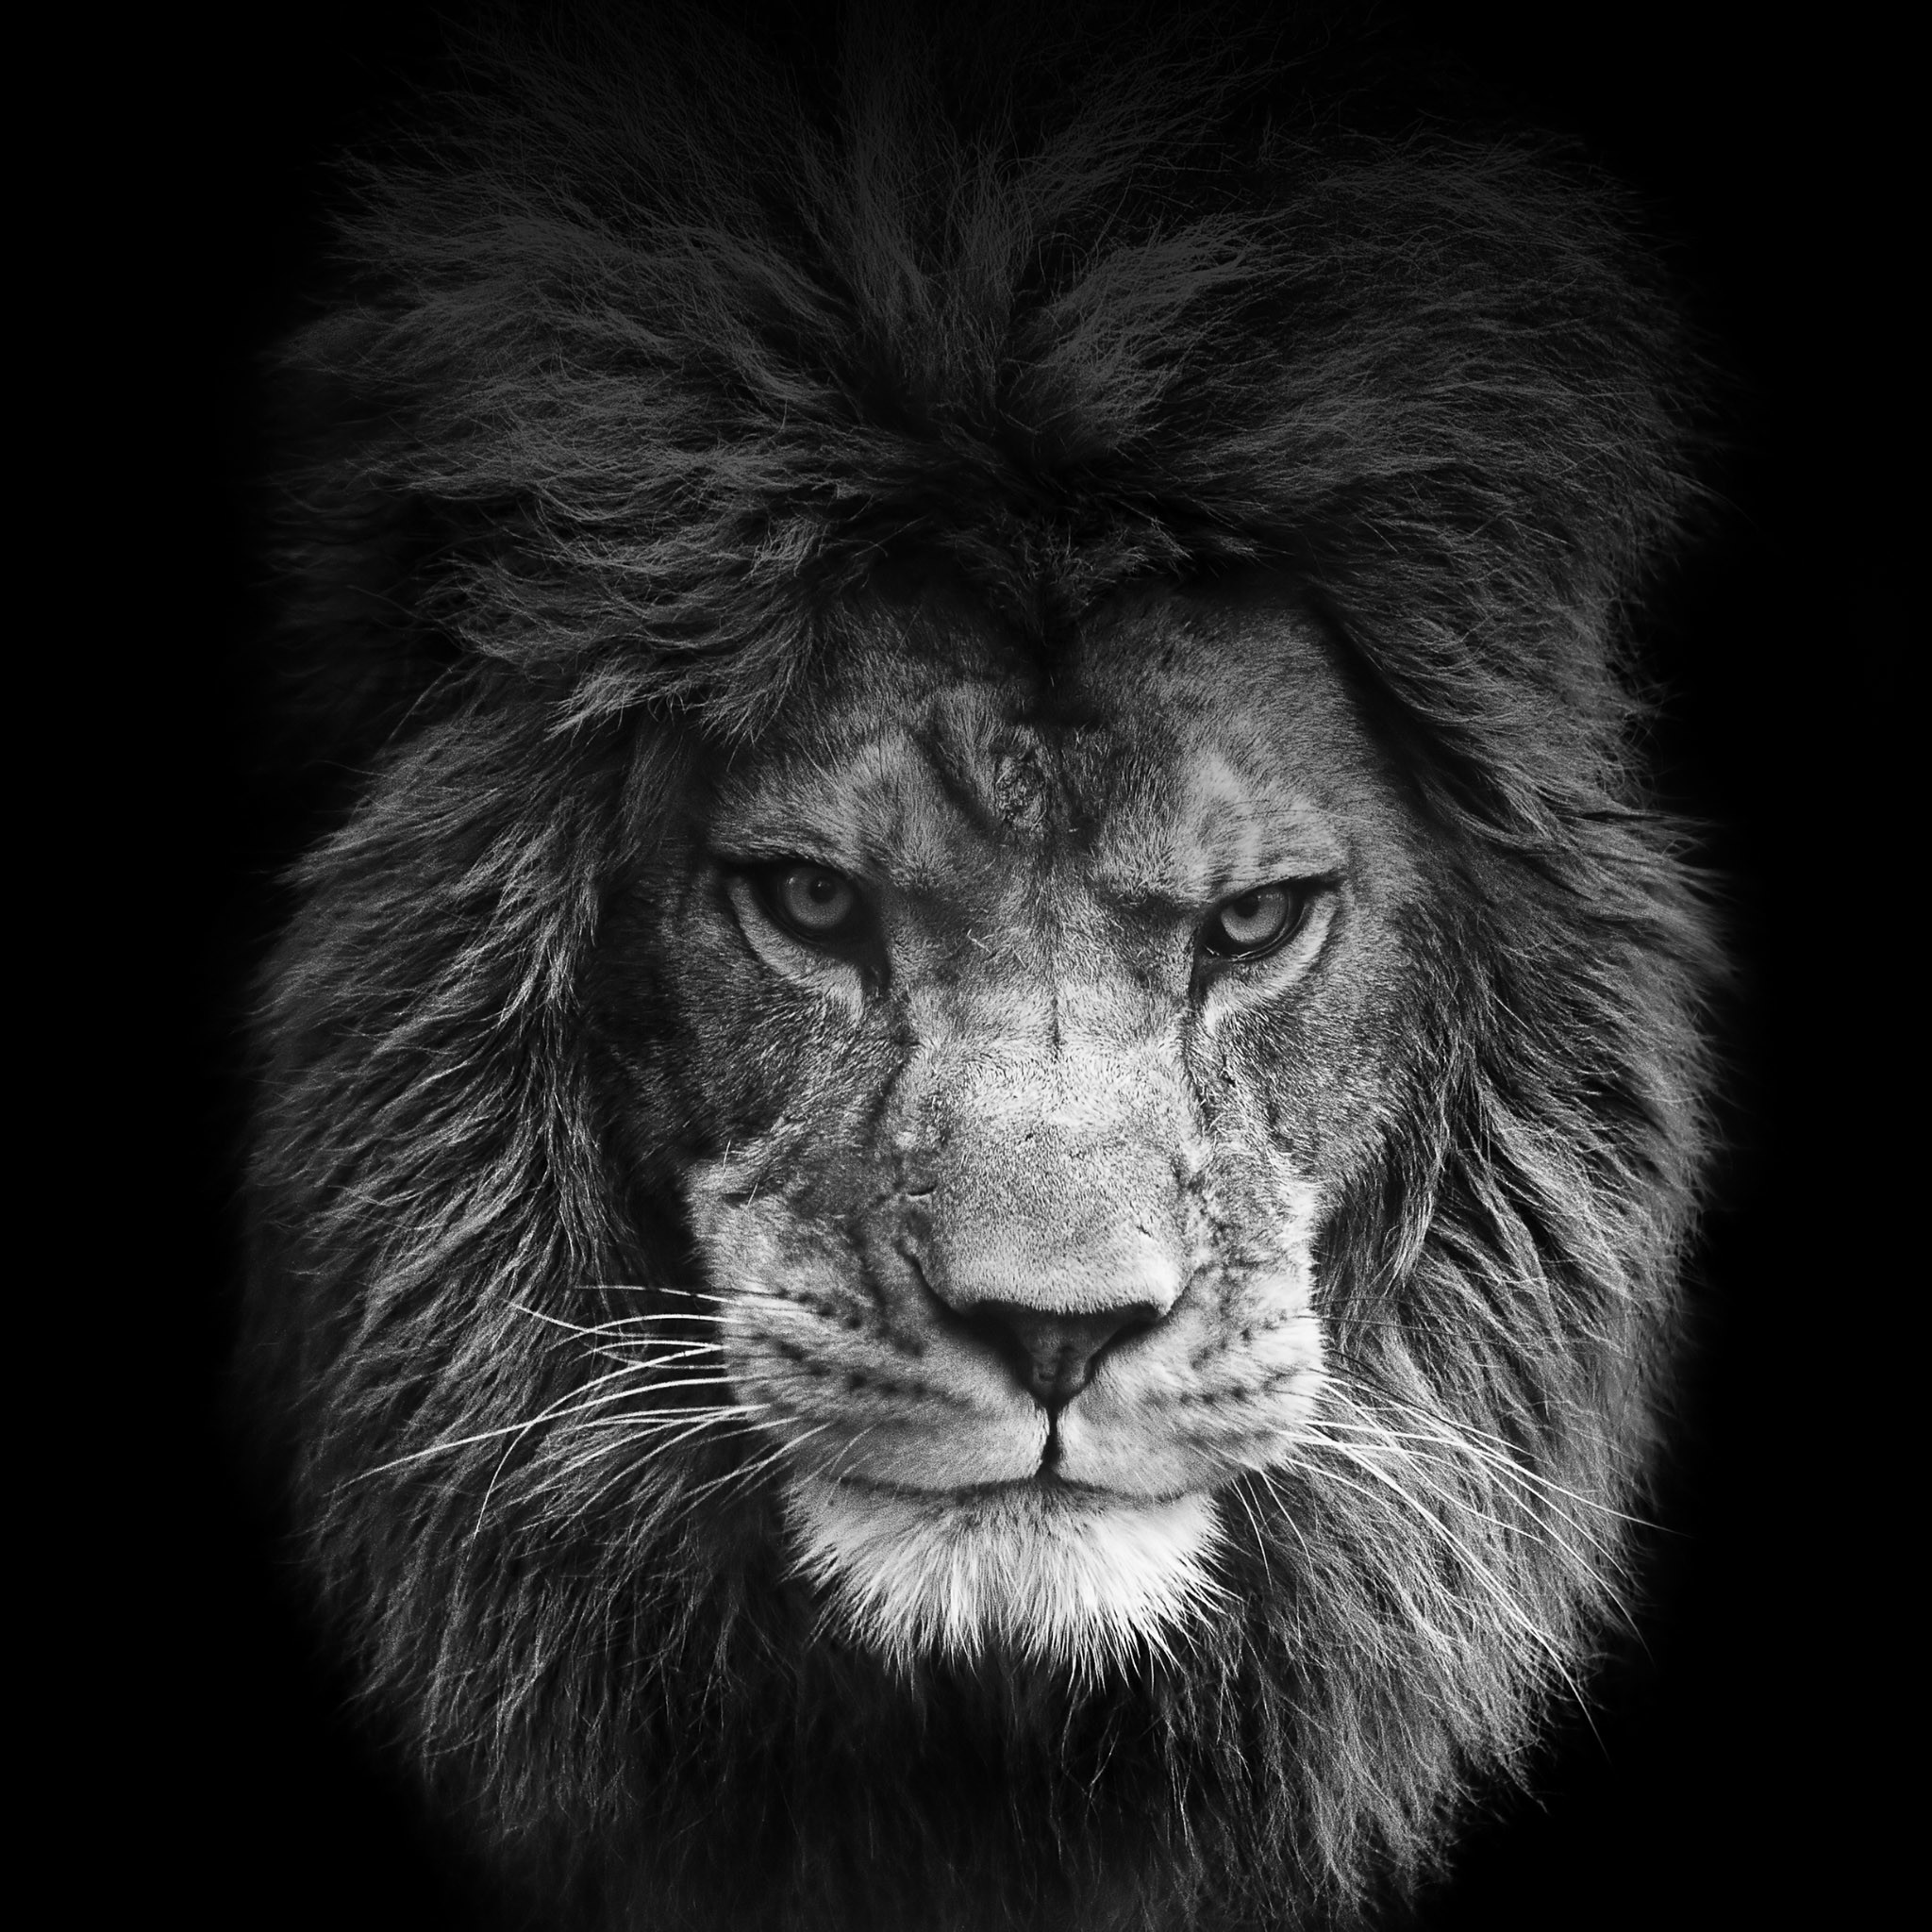 2560x1440 Lion Black And White Wallpaper Hd Resolution